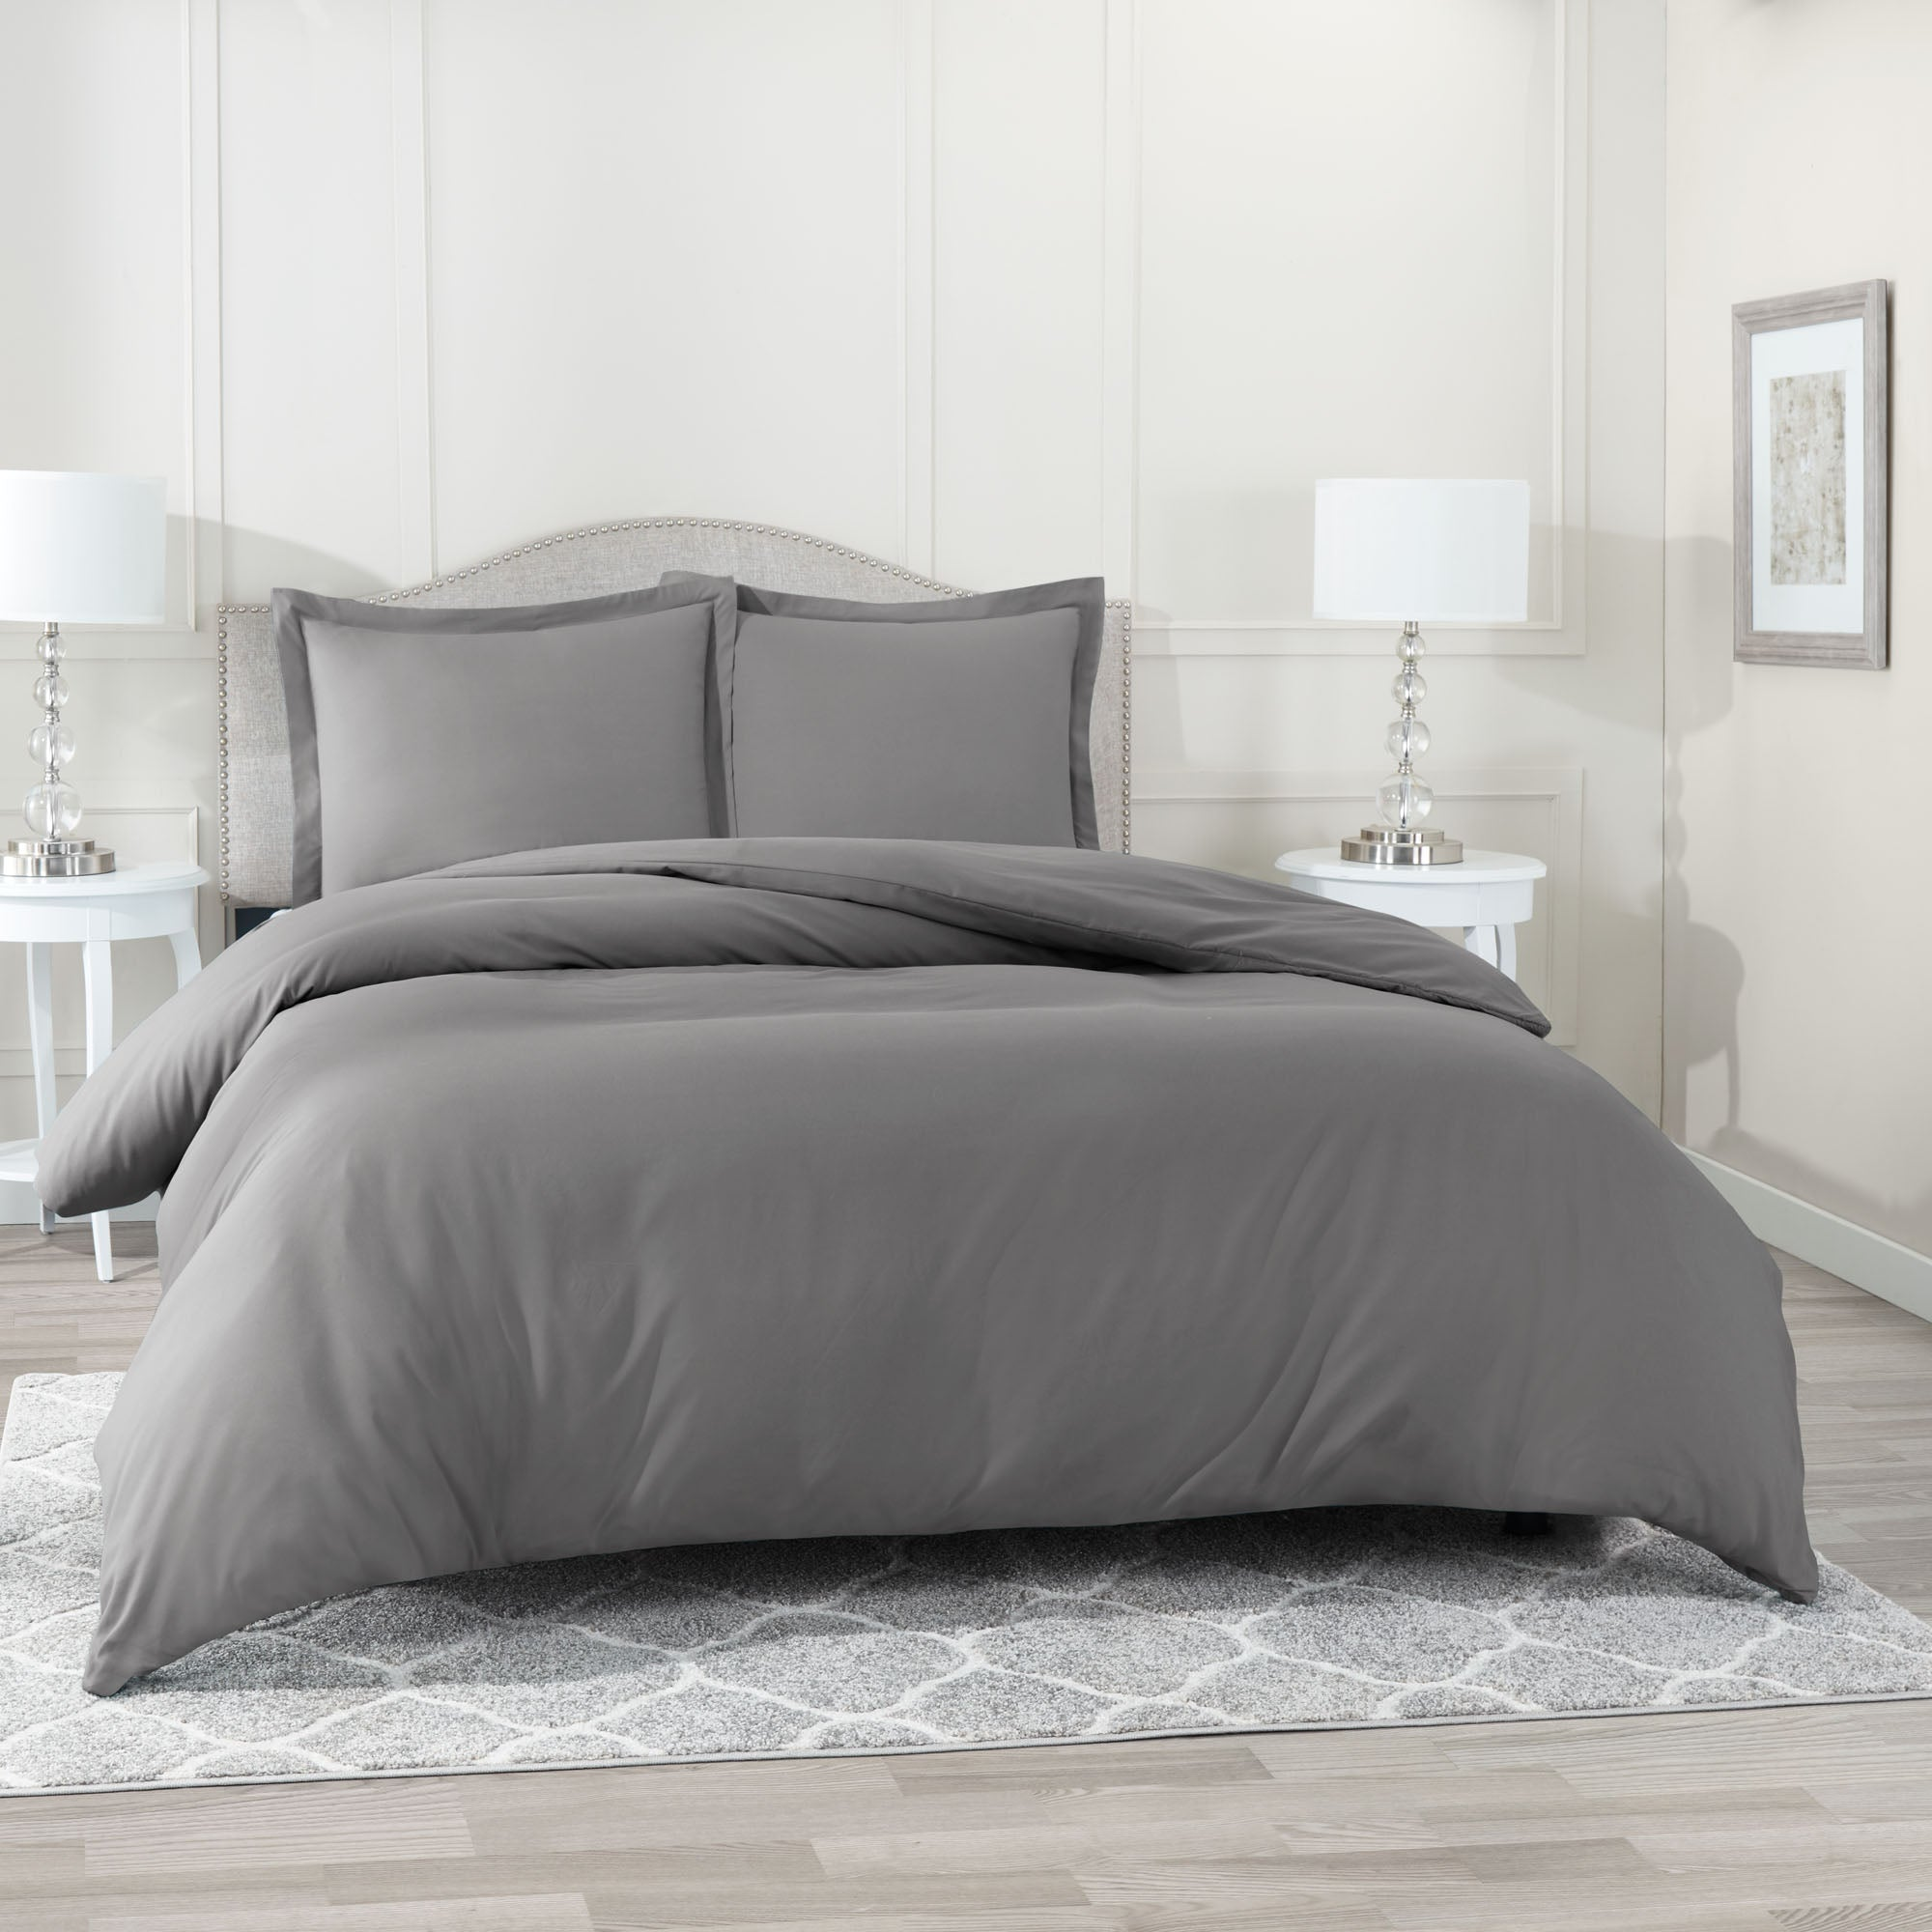 Clara Clark Duvet Cover 3 Piece Set – Ultra Soft Double Brushed Microfiber Hotel Collection – Comforter Cover with Button Closure and 2 Pillow Shams